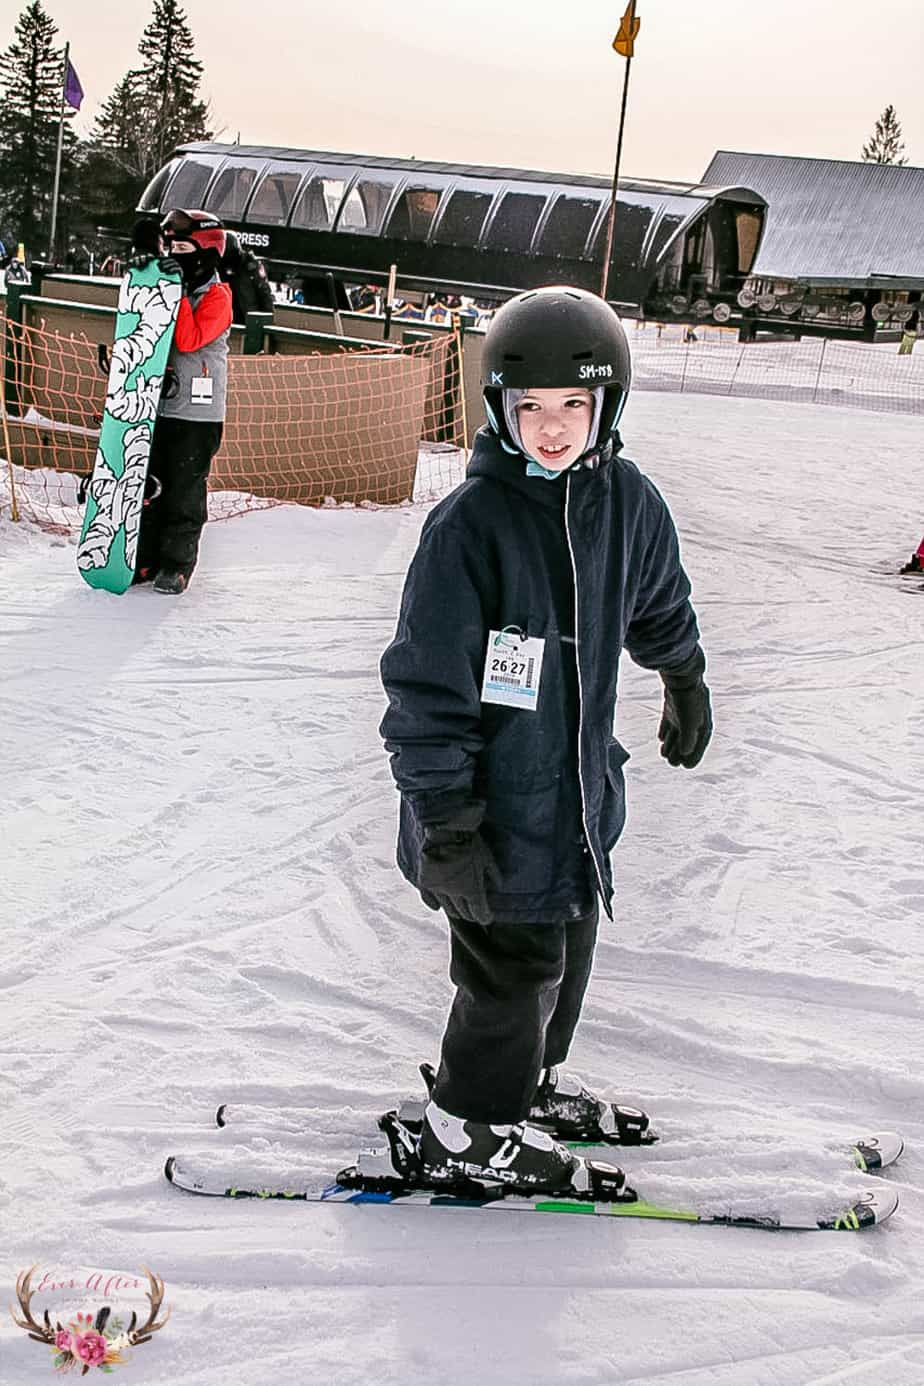 snow cap ski lessons for kids mount snow mt snow